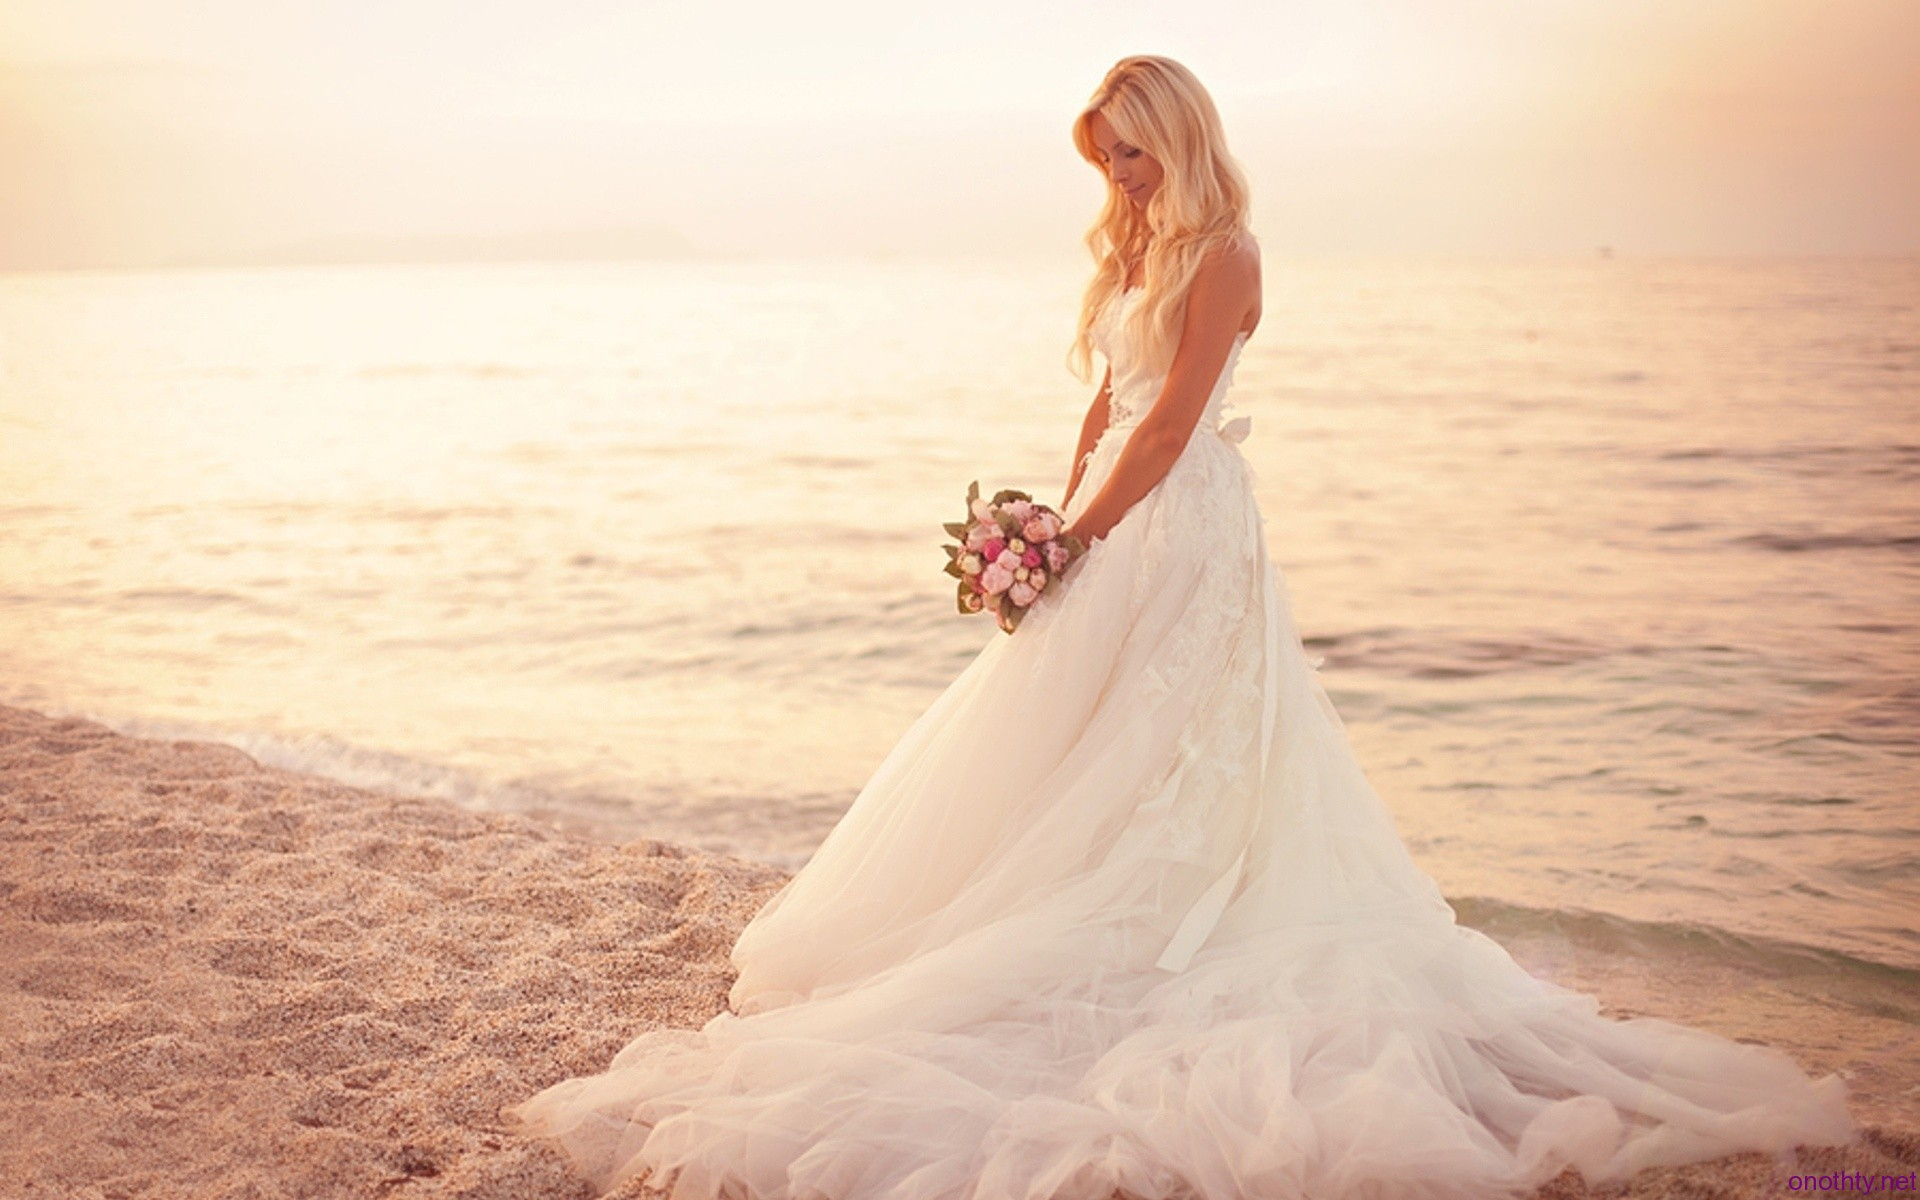 bride on beach after a wedding